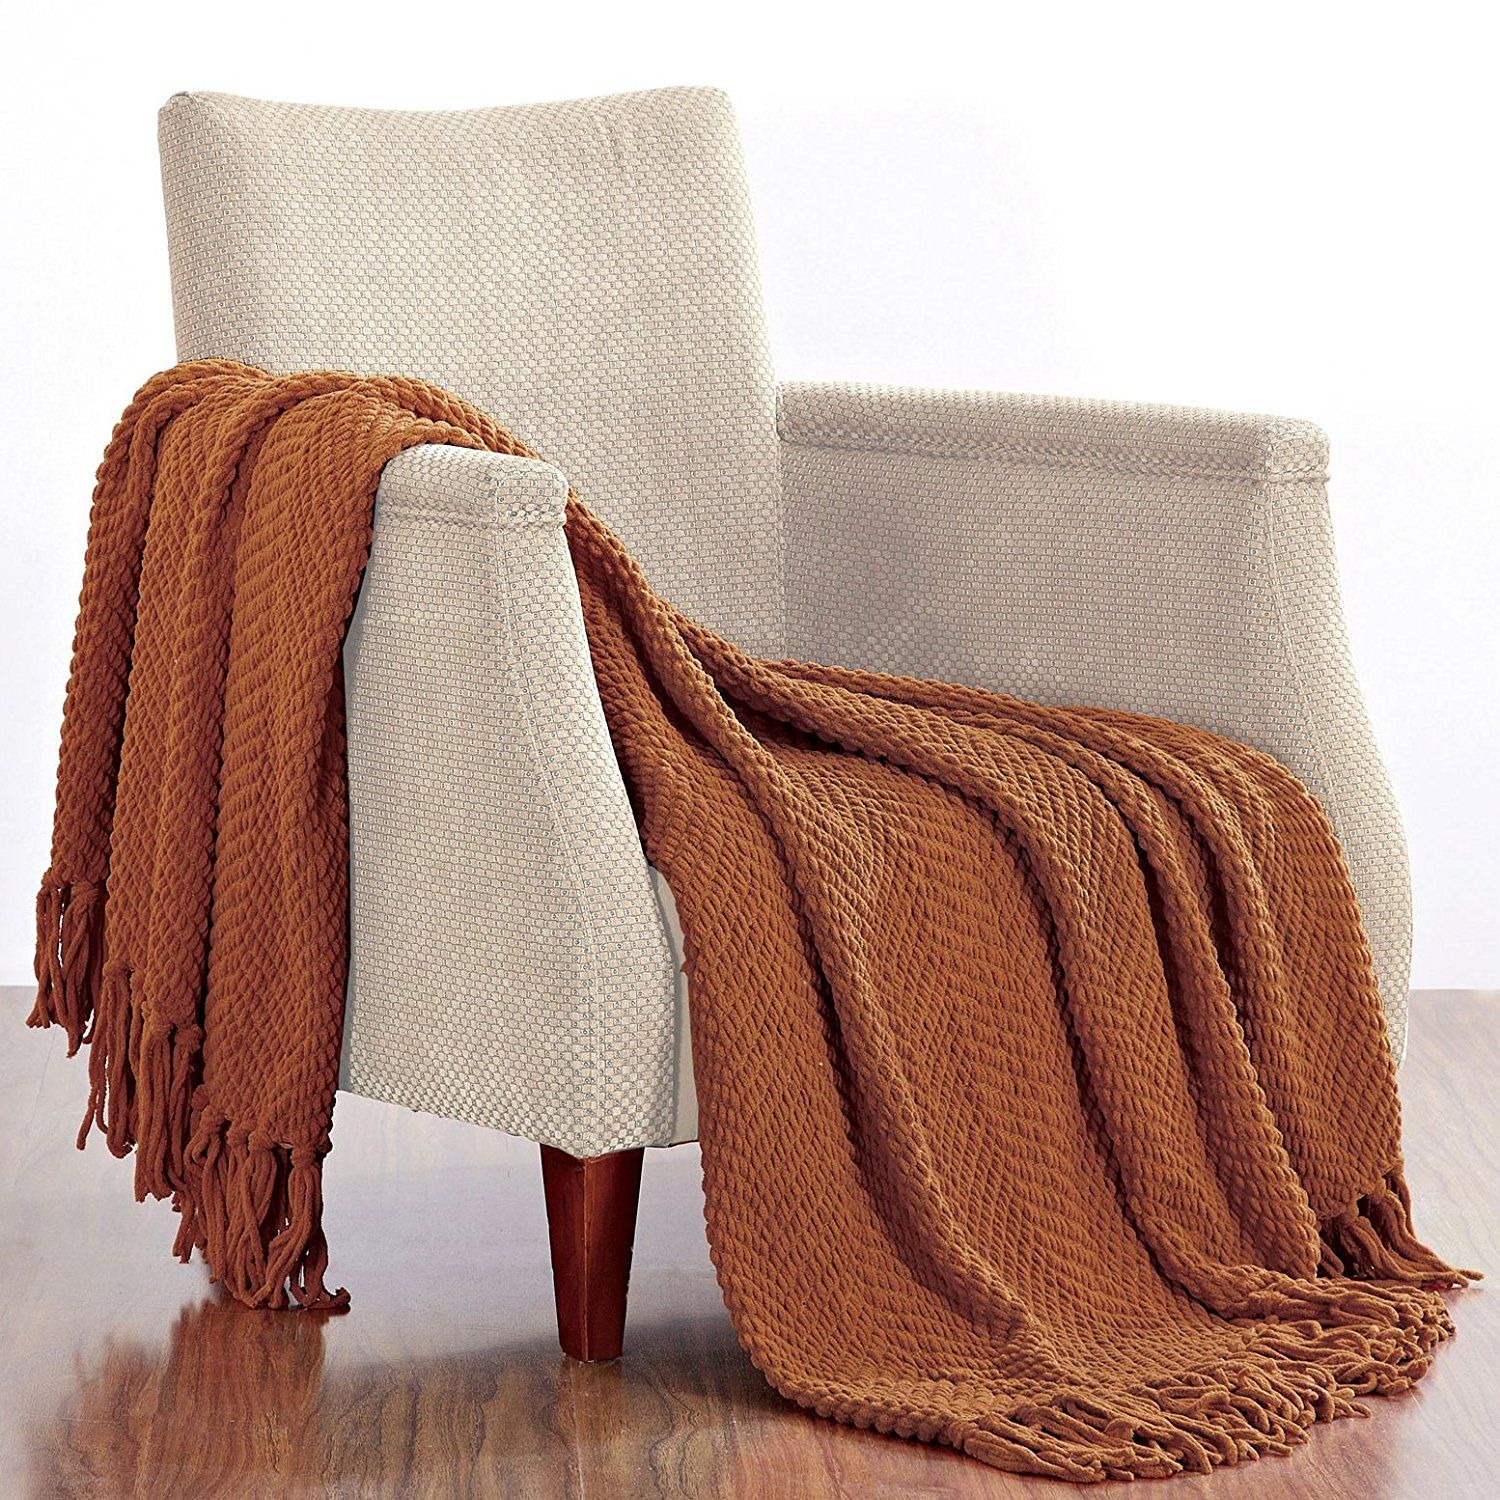 Throw Blankets For Couches New Boon Knitted Tweed Throw Couch Cover Blanket 50 X 60 Rust  Throw Design Decoration